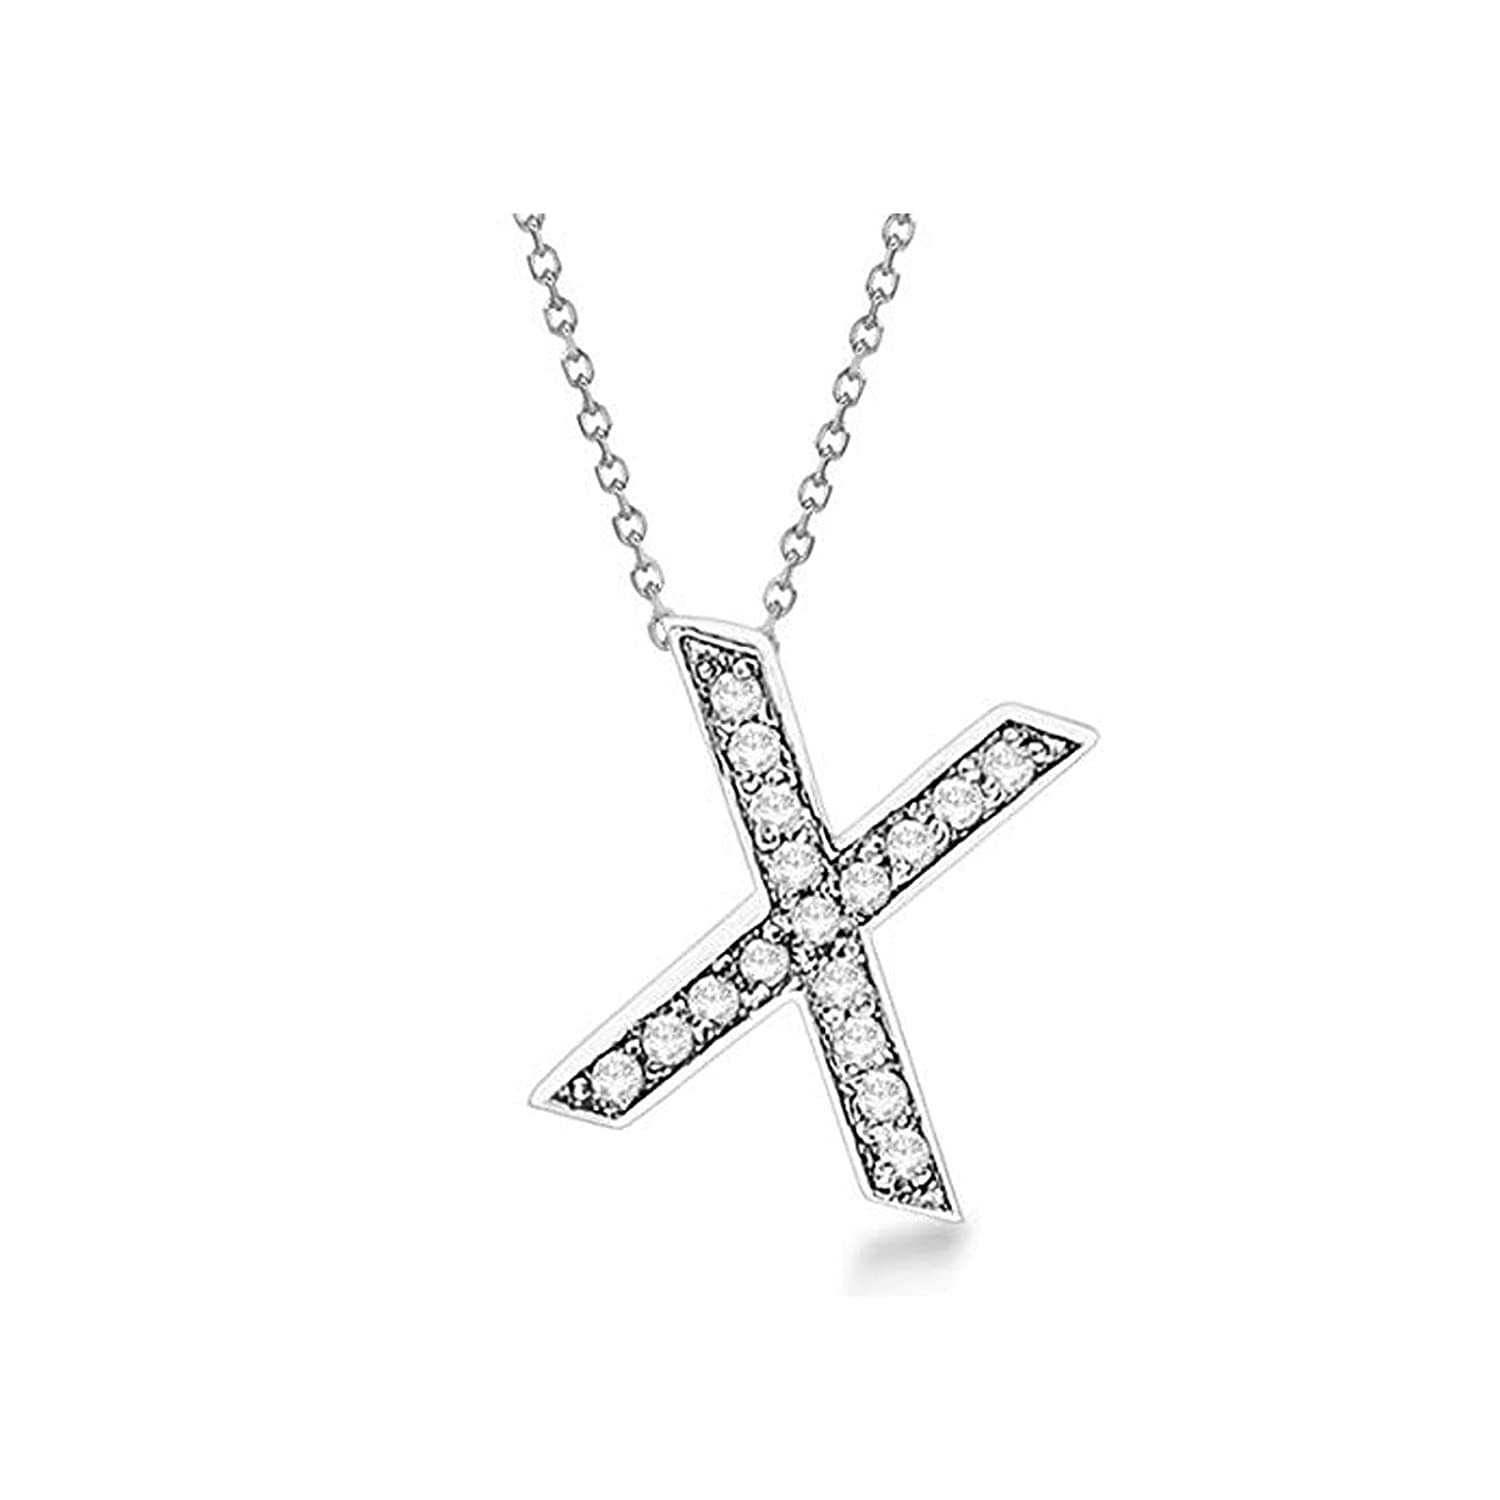 Gemhub Custom Tilted Diamond Block Letter Initial Necklace 14k White Gold Initial Personalized Pendant